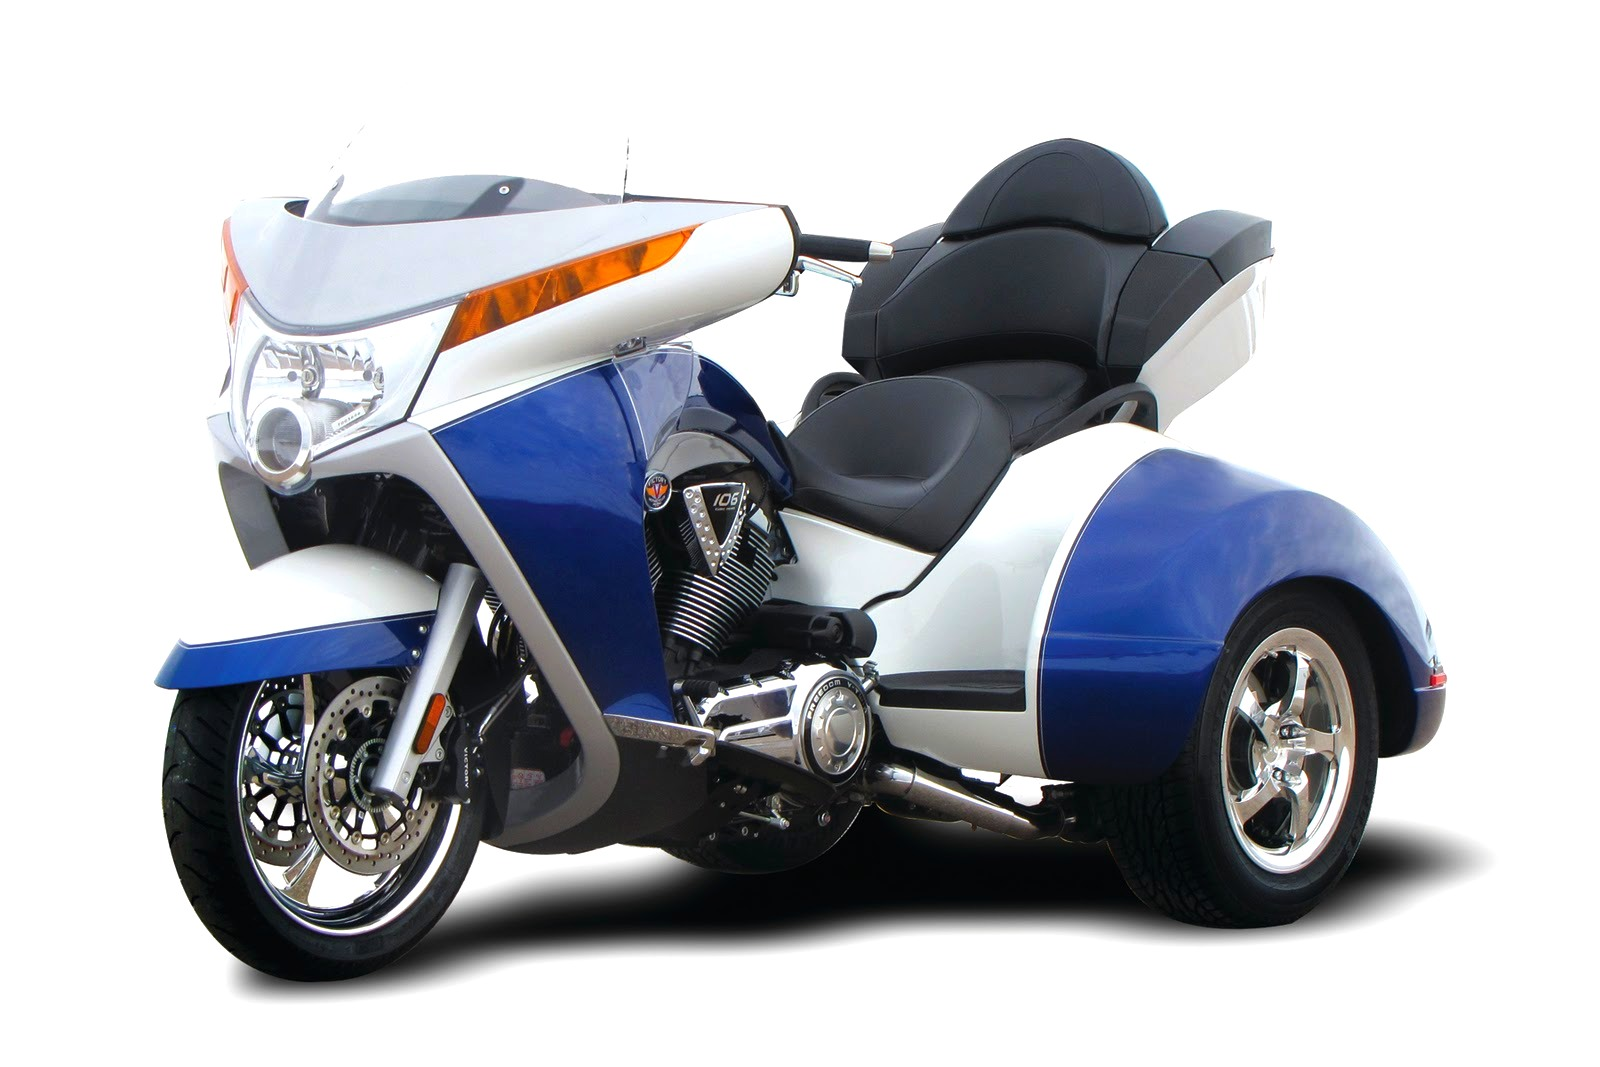 Lehman Trikes Continues Development Of Own Models Under